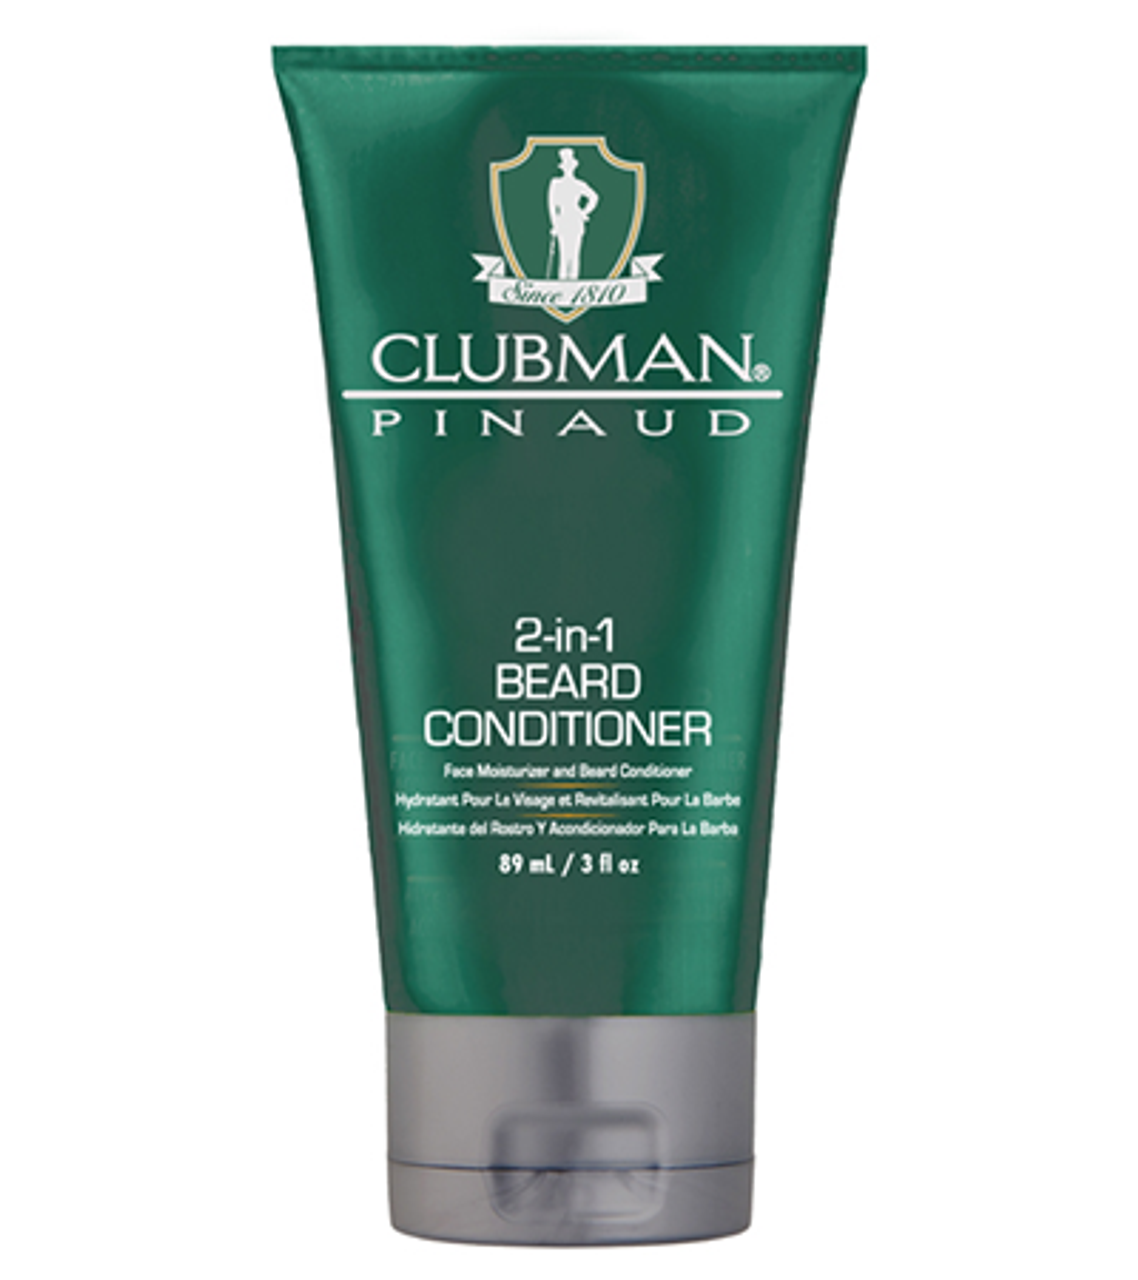 Clubman 2 in 1 Beard Conditioner